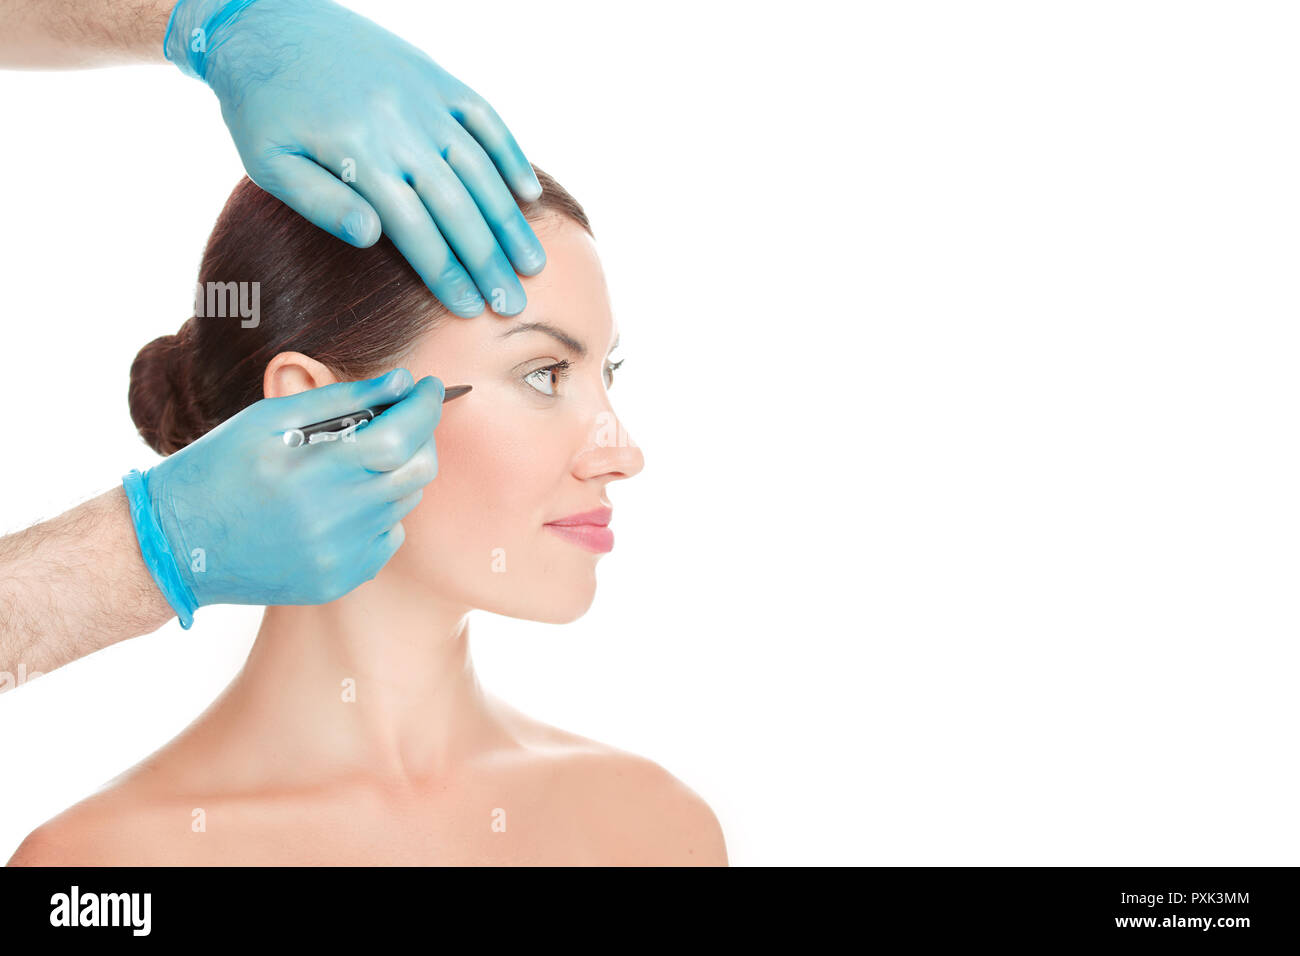 Anti wrinkle procedure. Crow-feet wrinkles reduction - Stock Image